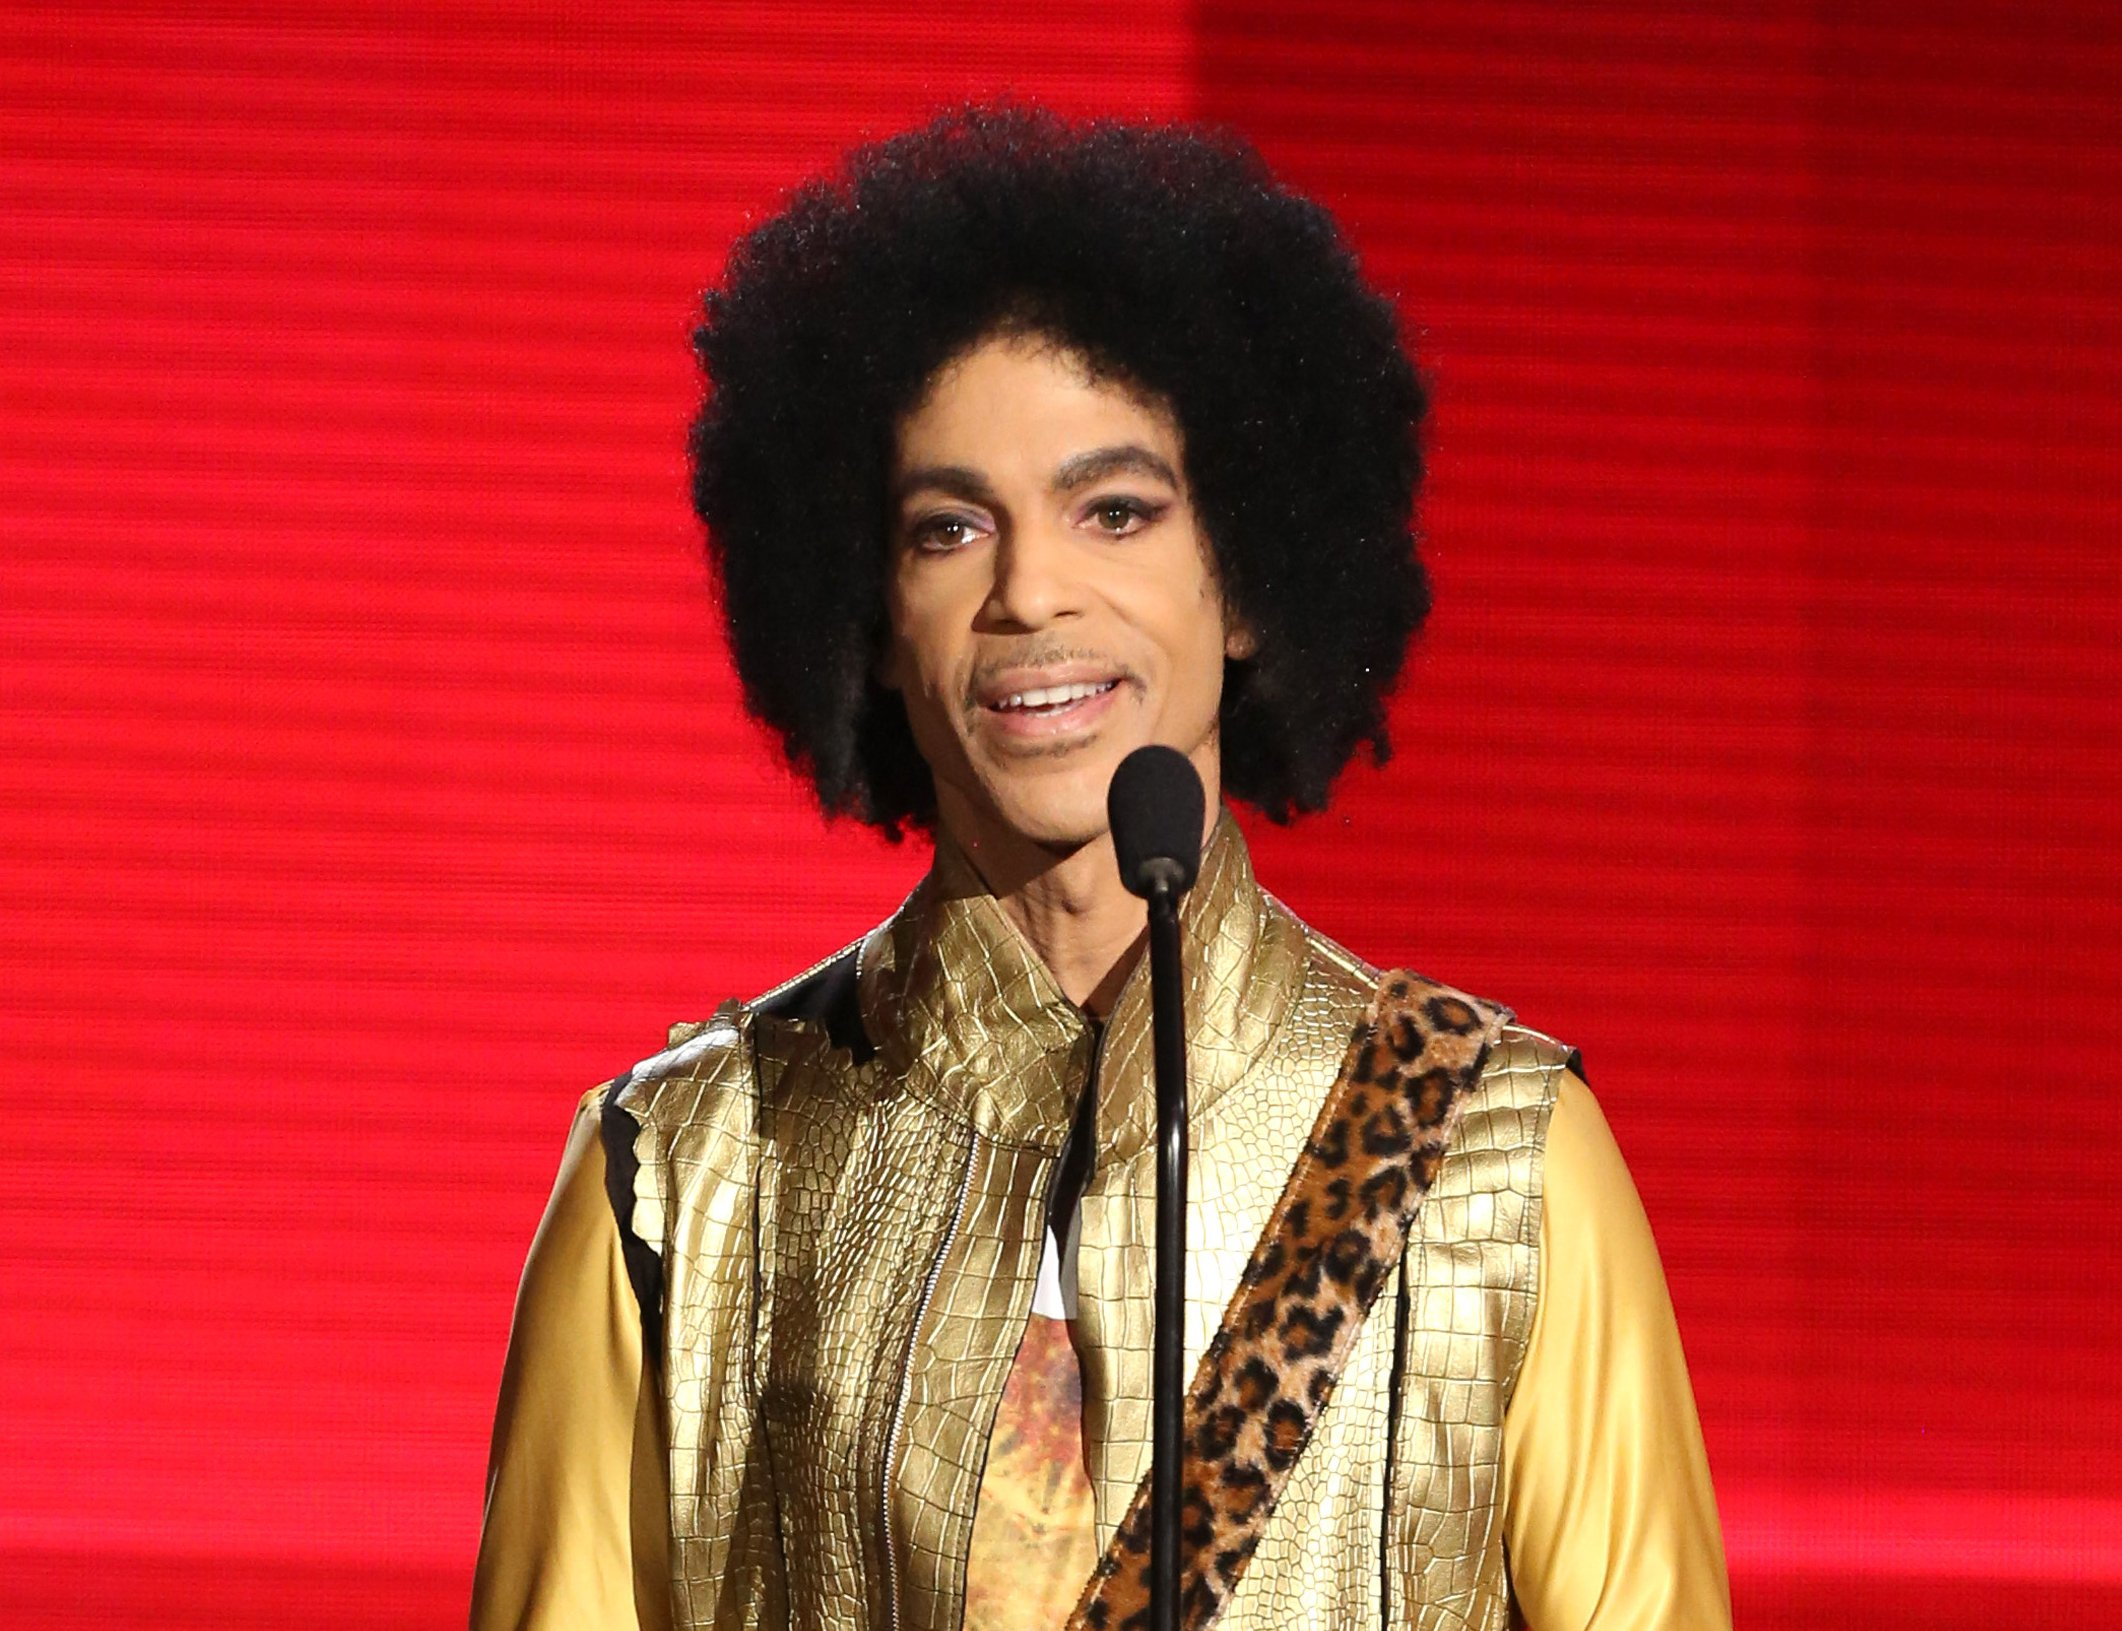 Prince presents the award for favorite album - soul/R&B at the American Music Awards in Los Angeles. Authorities are investigating a death at Paisley Park, where pop superstar Prince has his recording studios. Jason Kamerud, Carver County chief sheriff's deputy, tells the Minneapolis Star Tribune that the investigation began on Thursday morning, April 21, 2016. (Photo by Matt Sayles/Invision/AP, File)